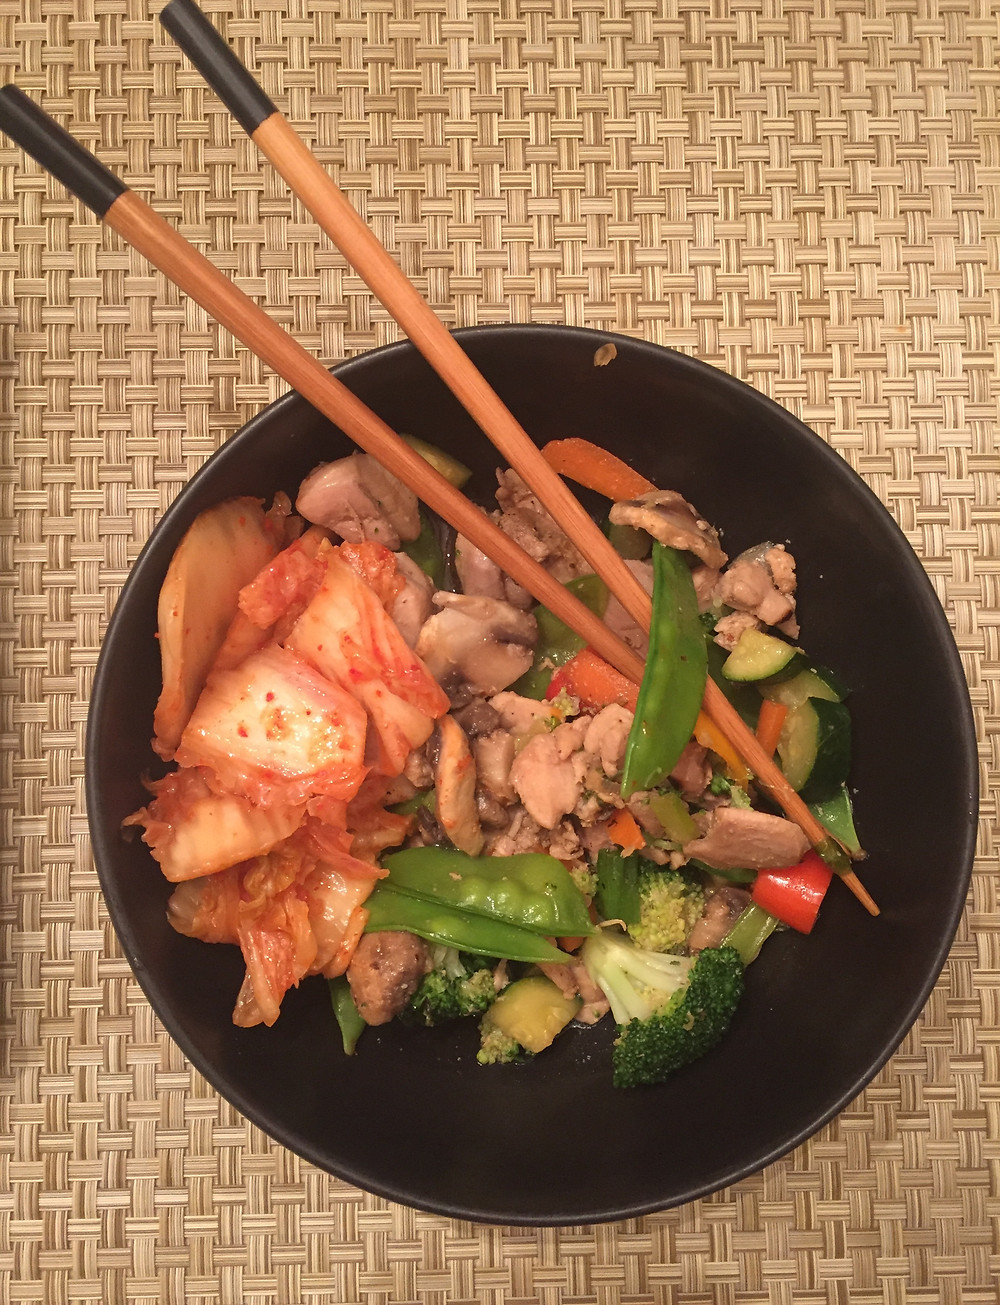 plate of chicken stir fry with mixed vegetables chop sticks kimchi